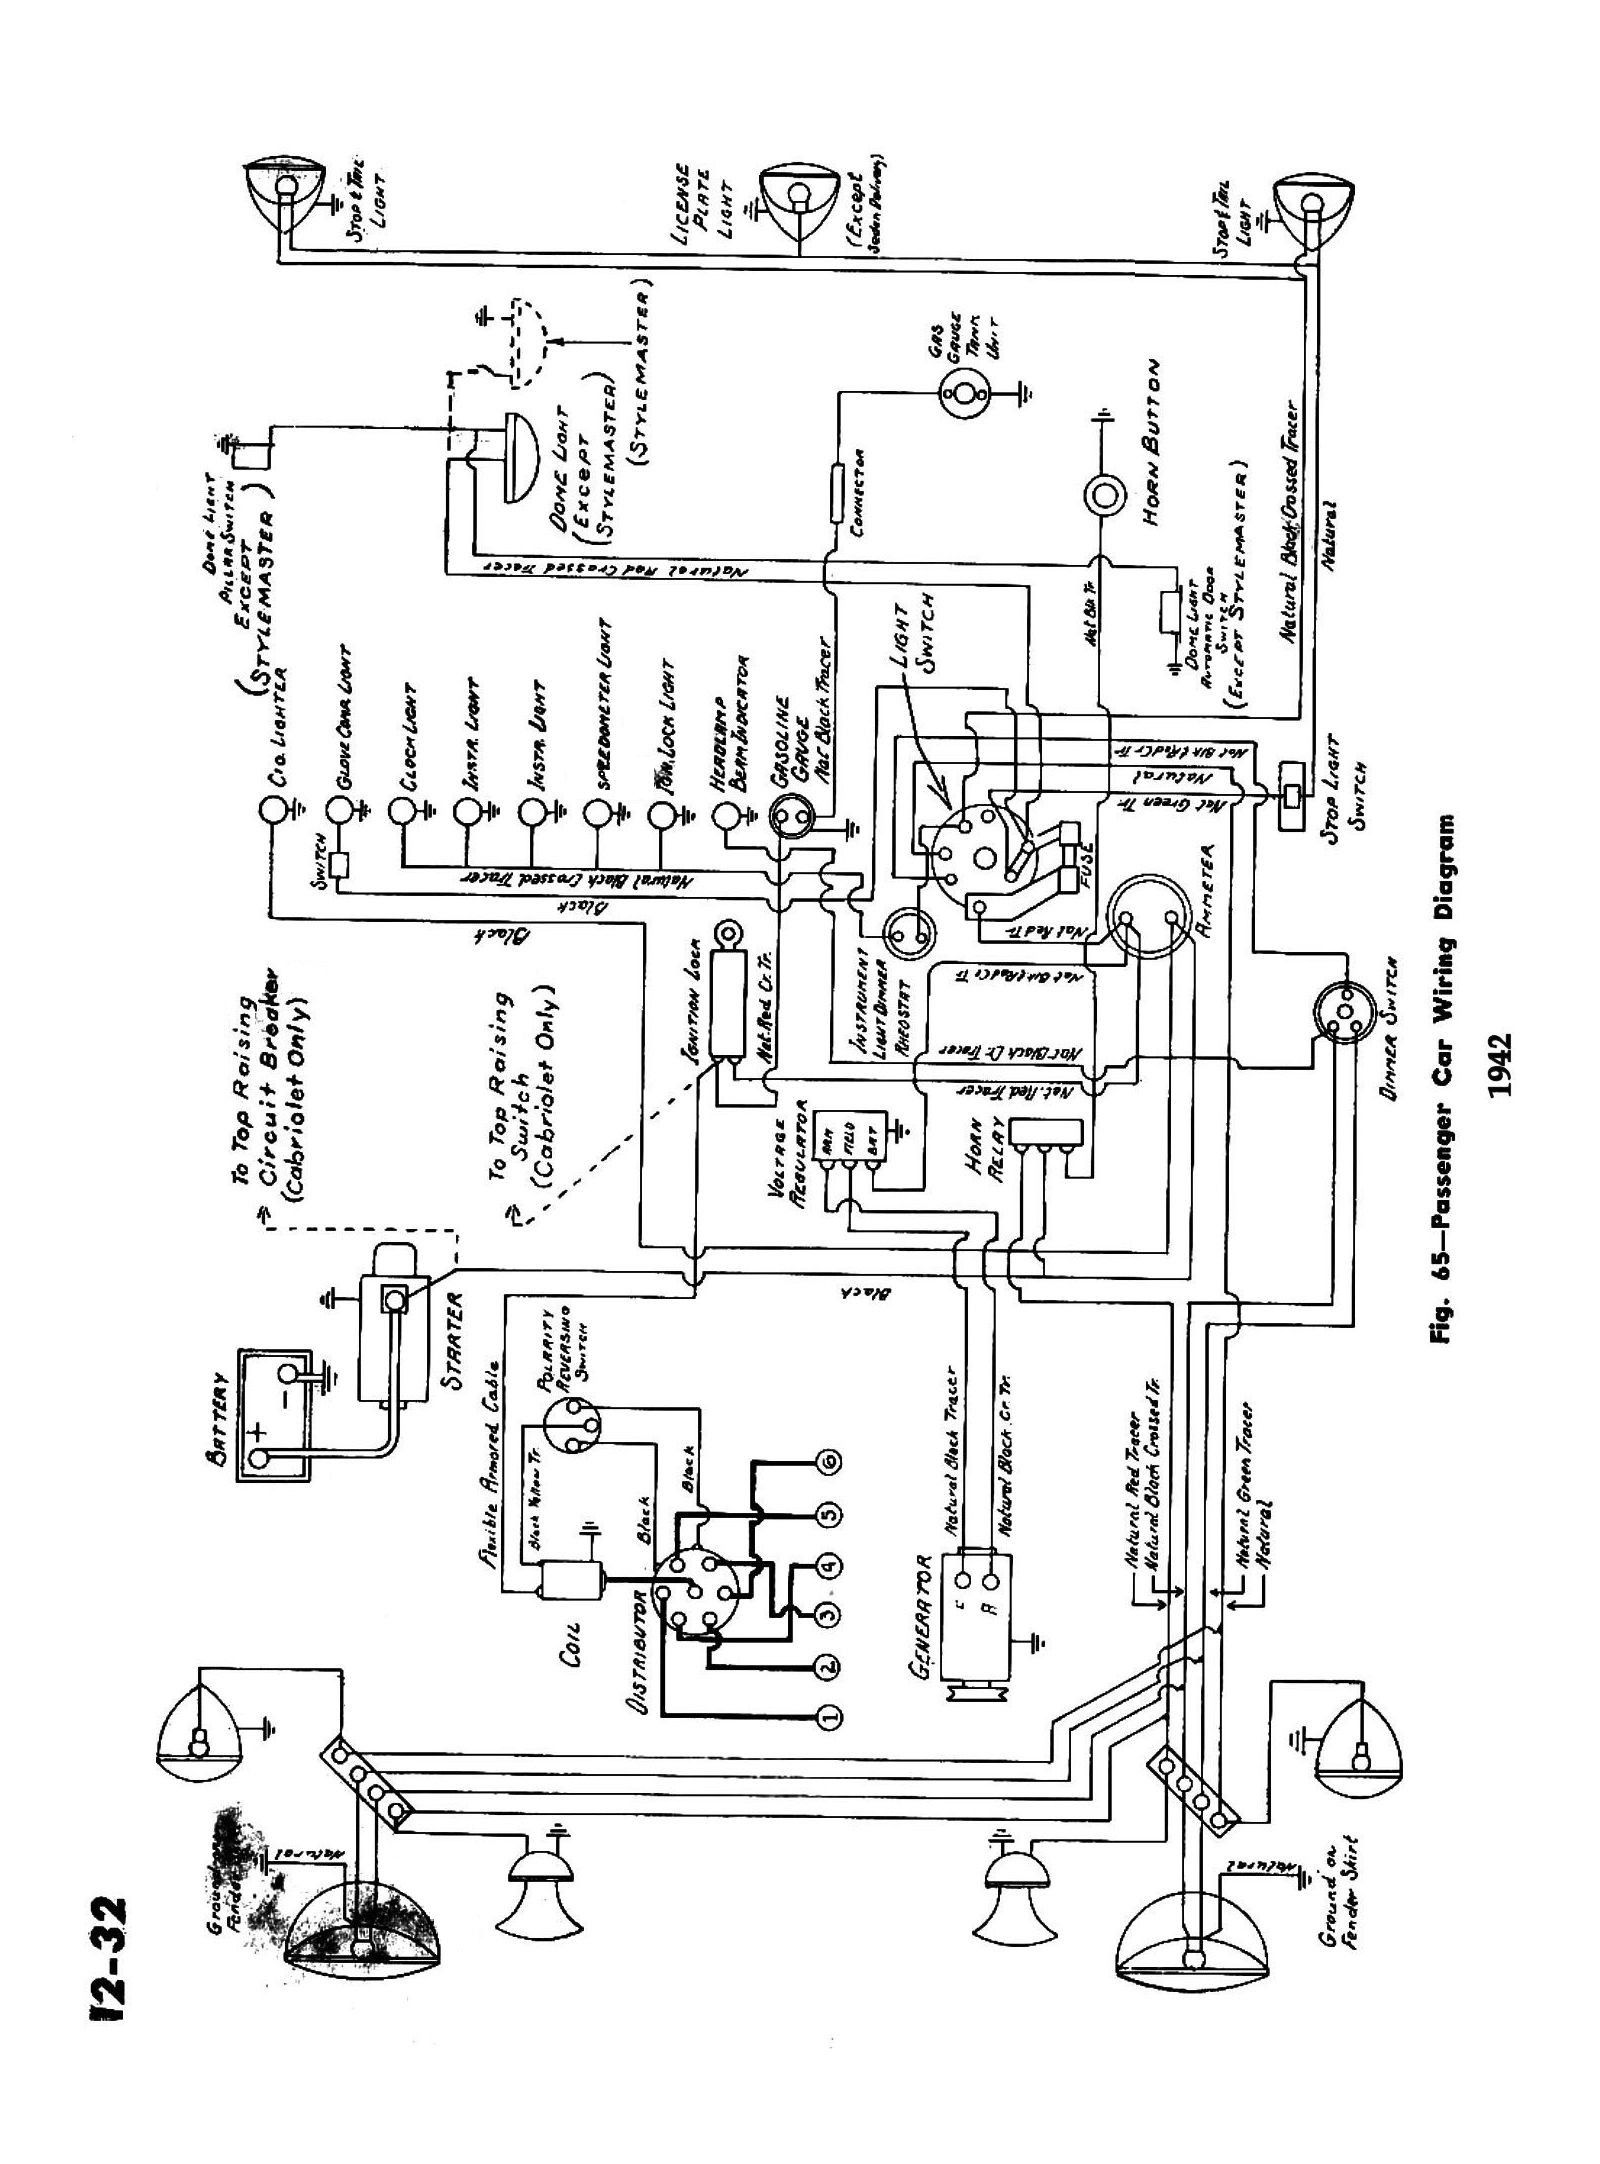 2003 Chevy 3500 Wiring Diagram In 2020 Electrical Wiring Diagram Electrical Diagram Diagram